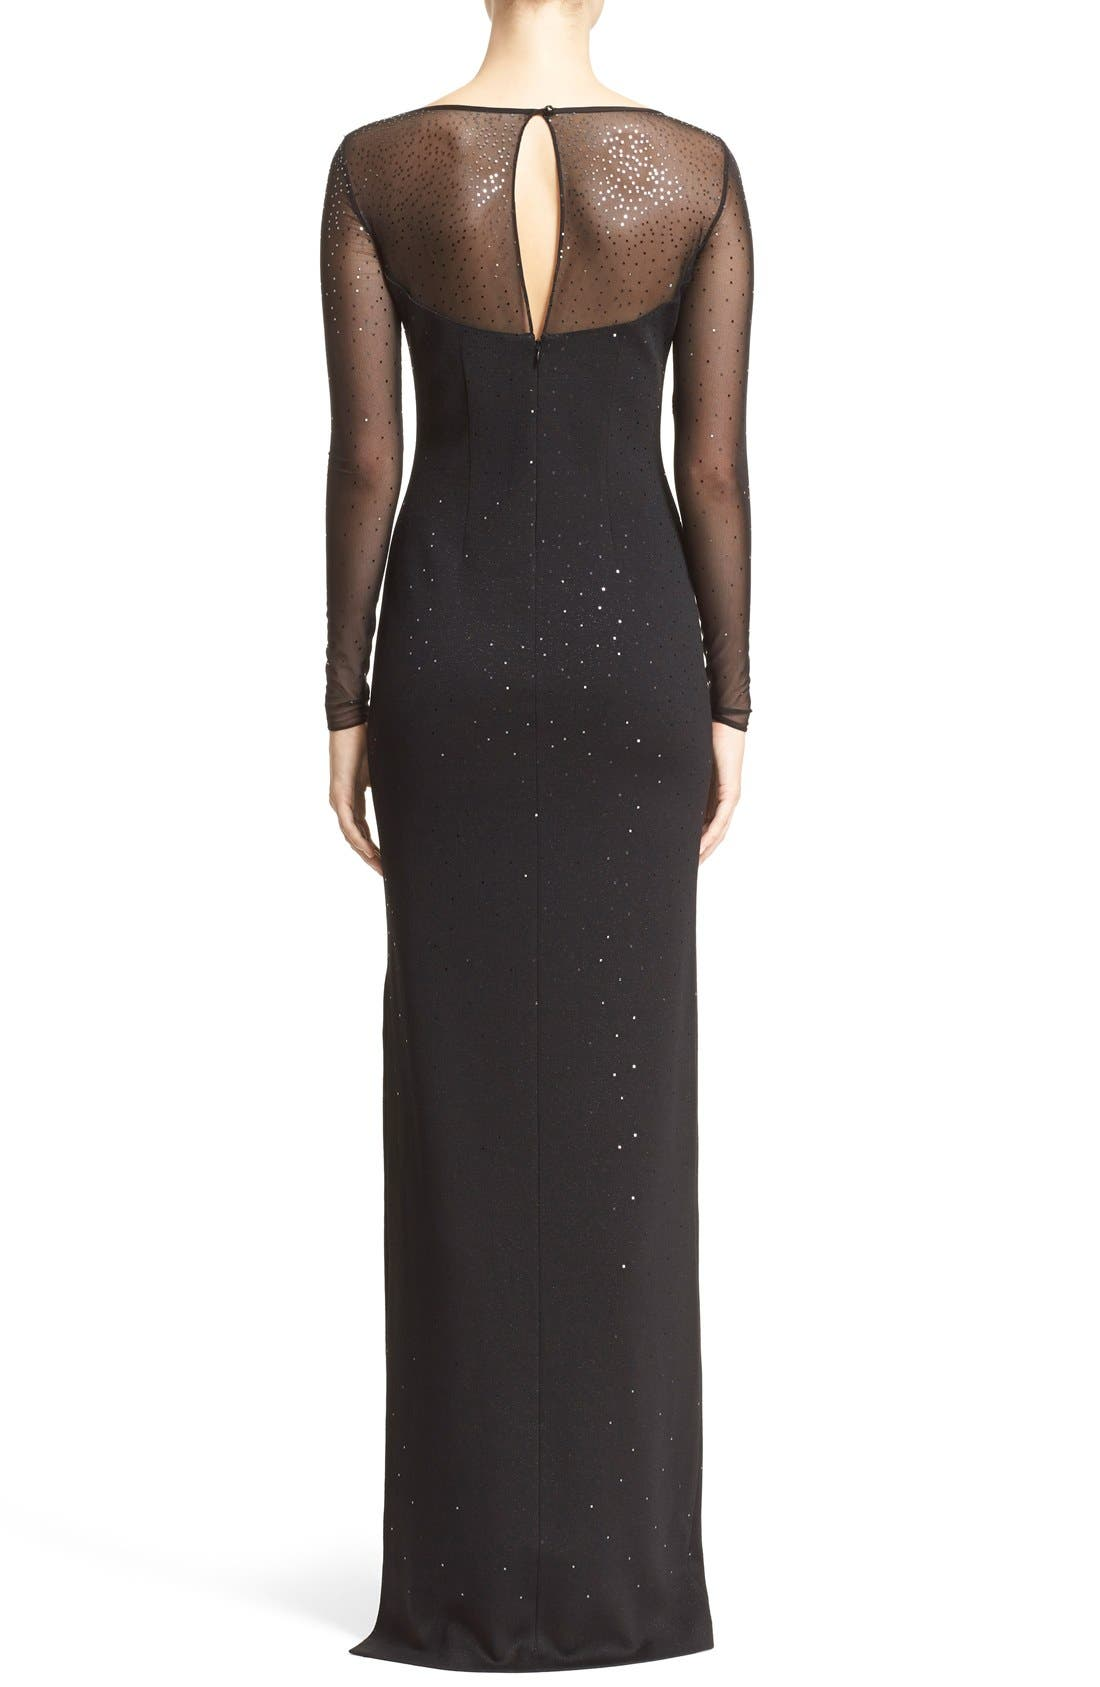 ST. JOHN COLLECTION, Embellished Shimmer Milano Knit Gown, Alternate thumbnail 5, color, 001